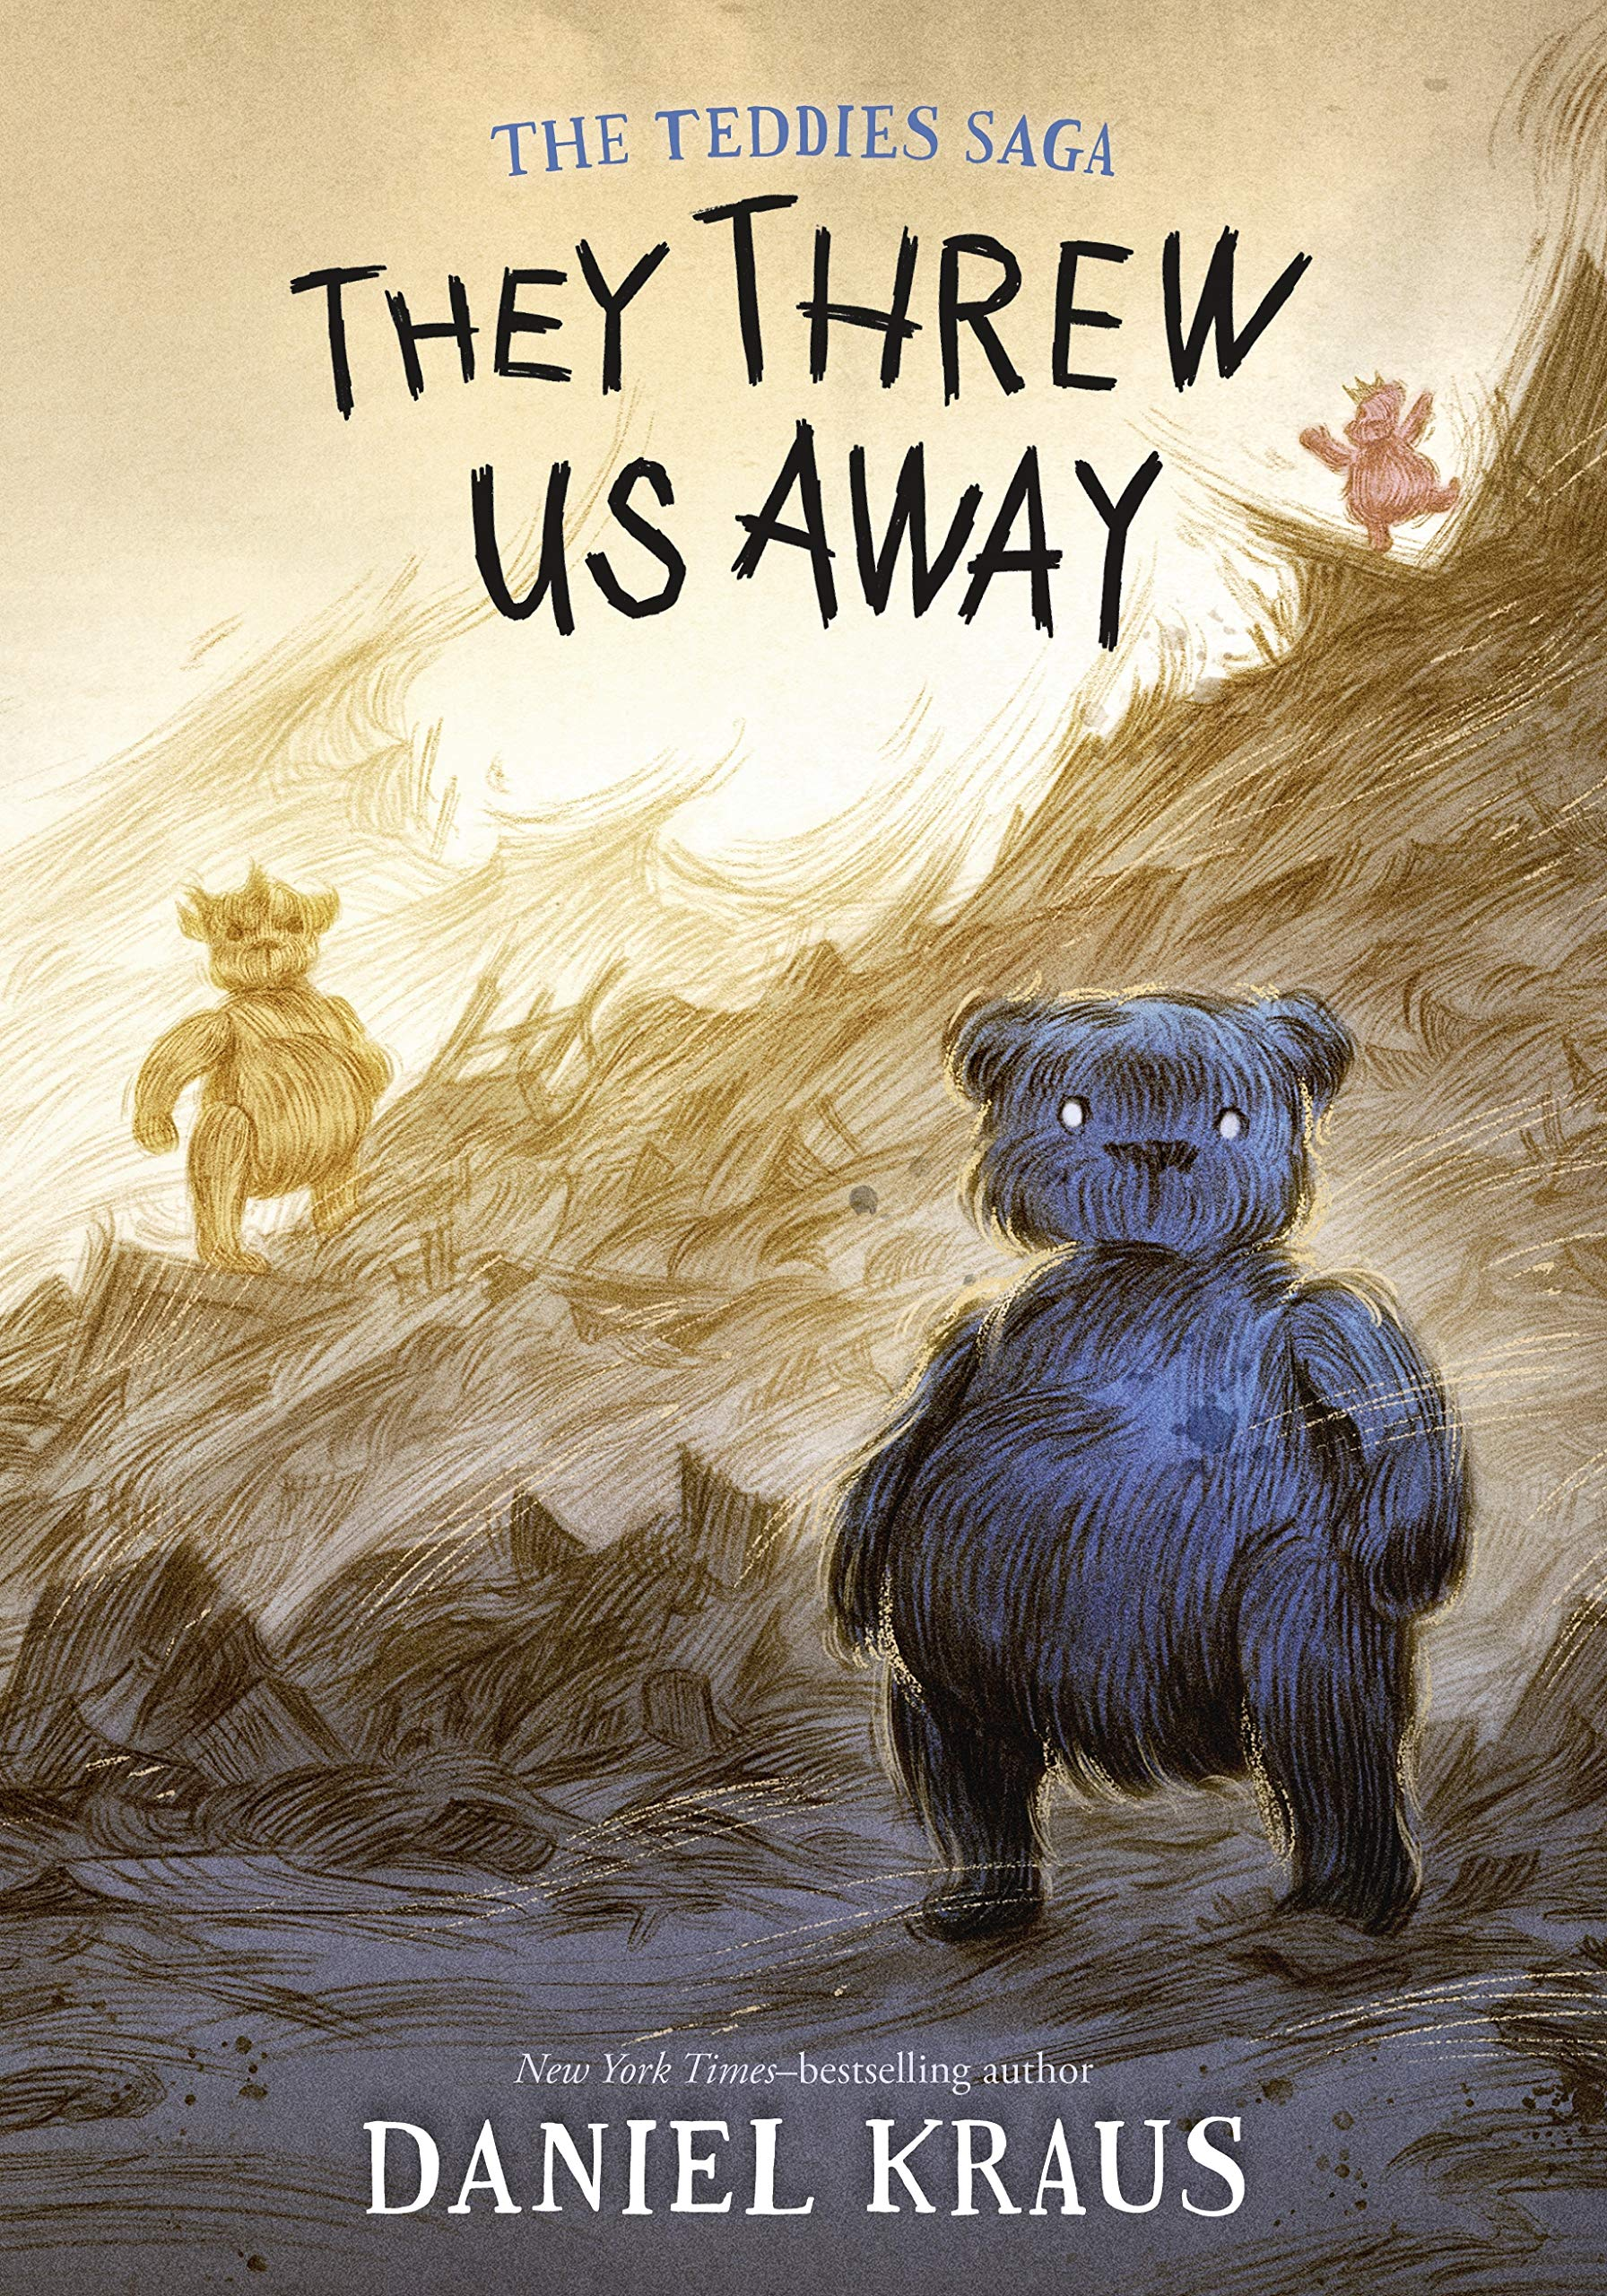 They Threw Us Away (The Teddies Saga)